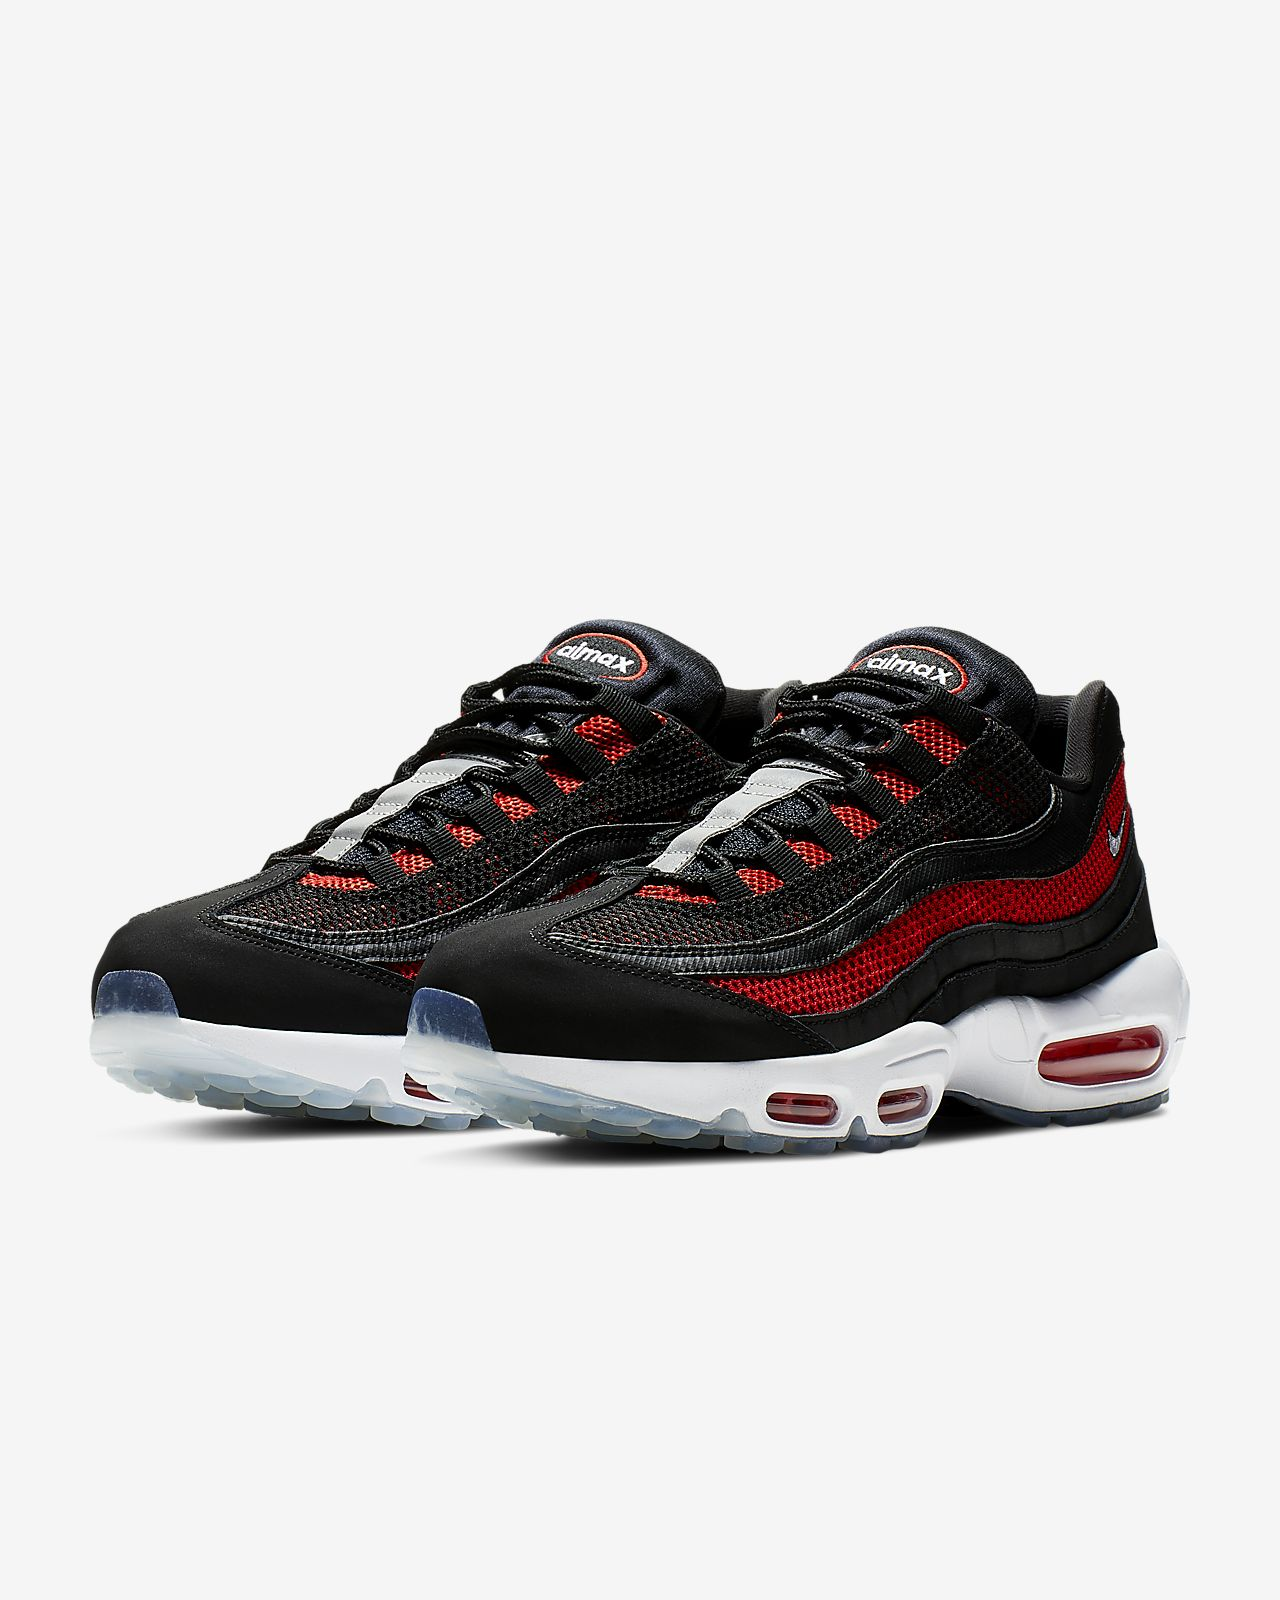 online retailer d138d 90c1f ... Nike Air Max 95 Essential Men s Shoe